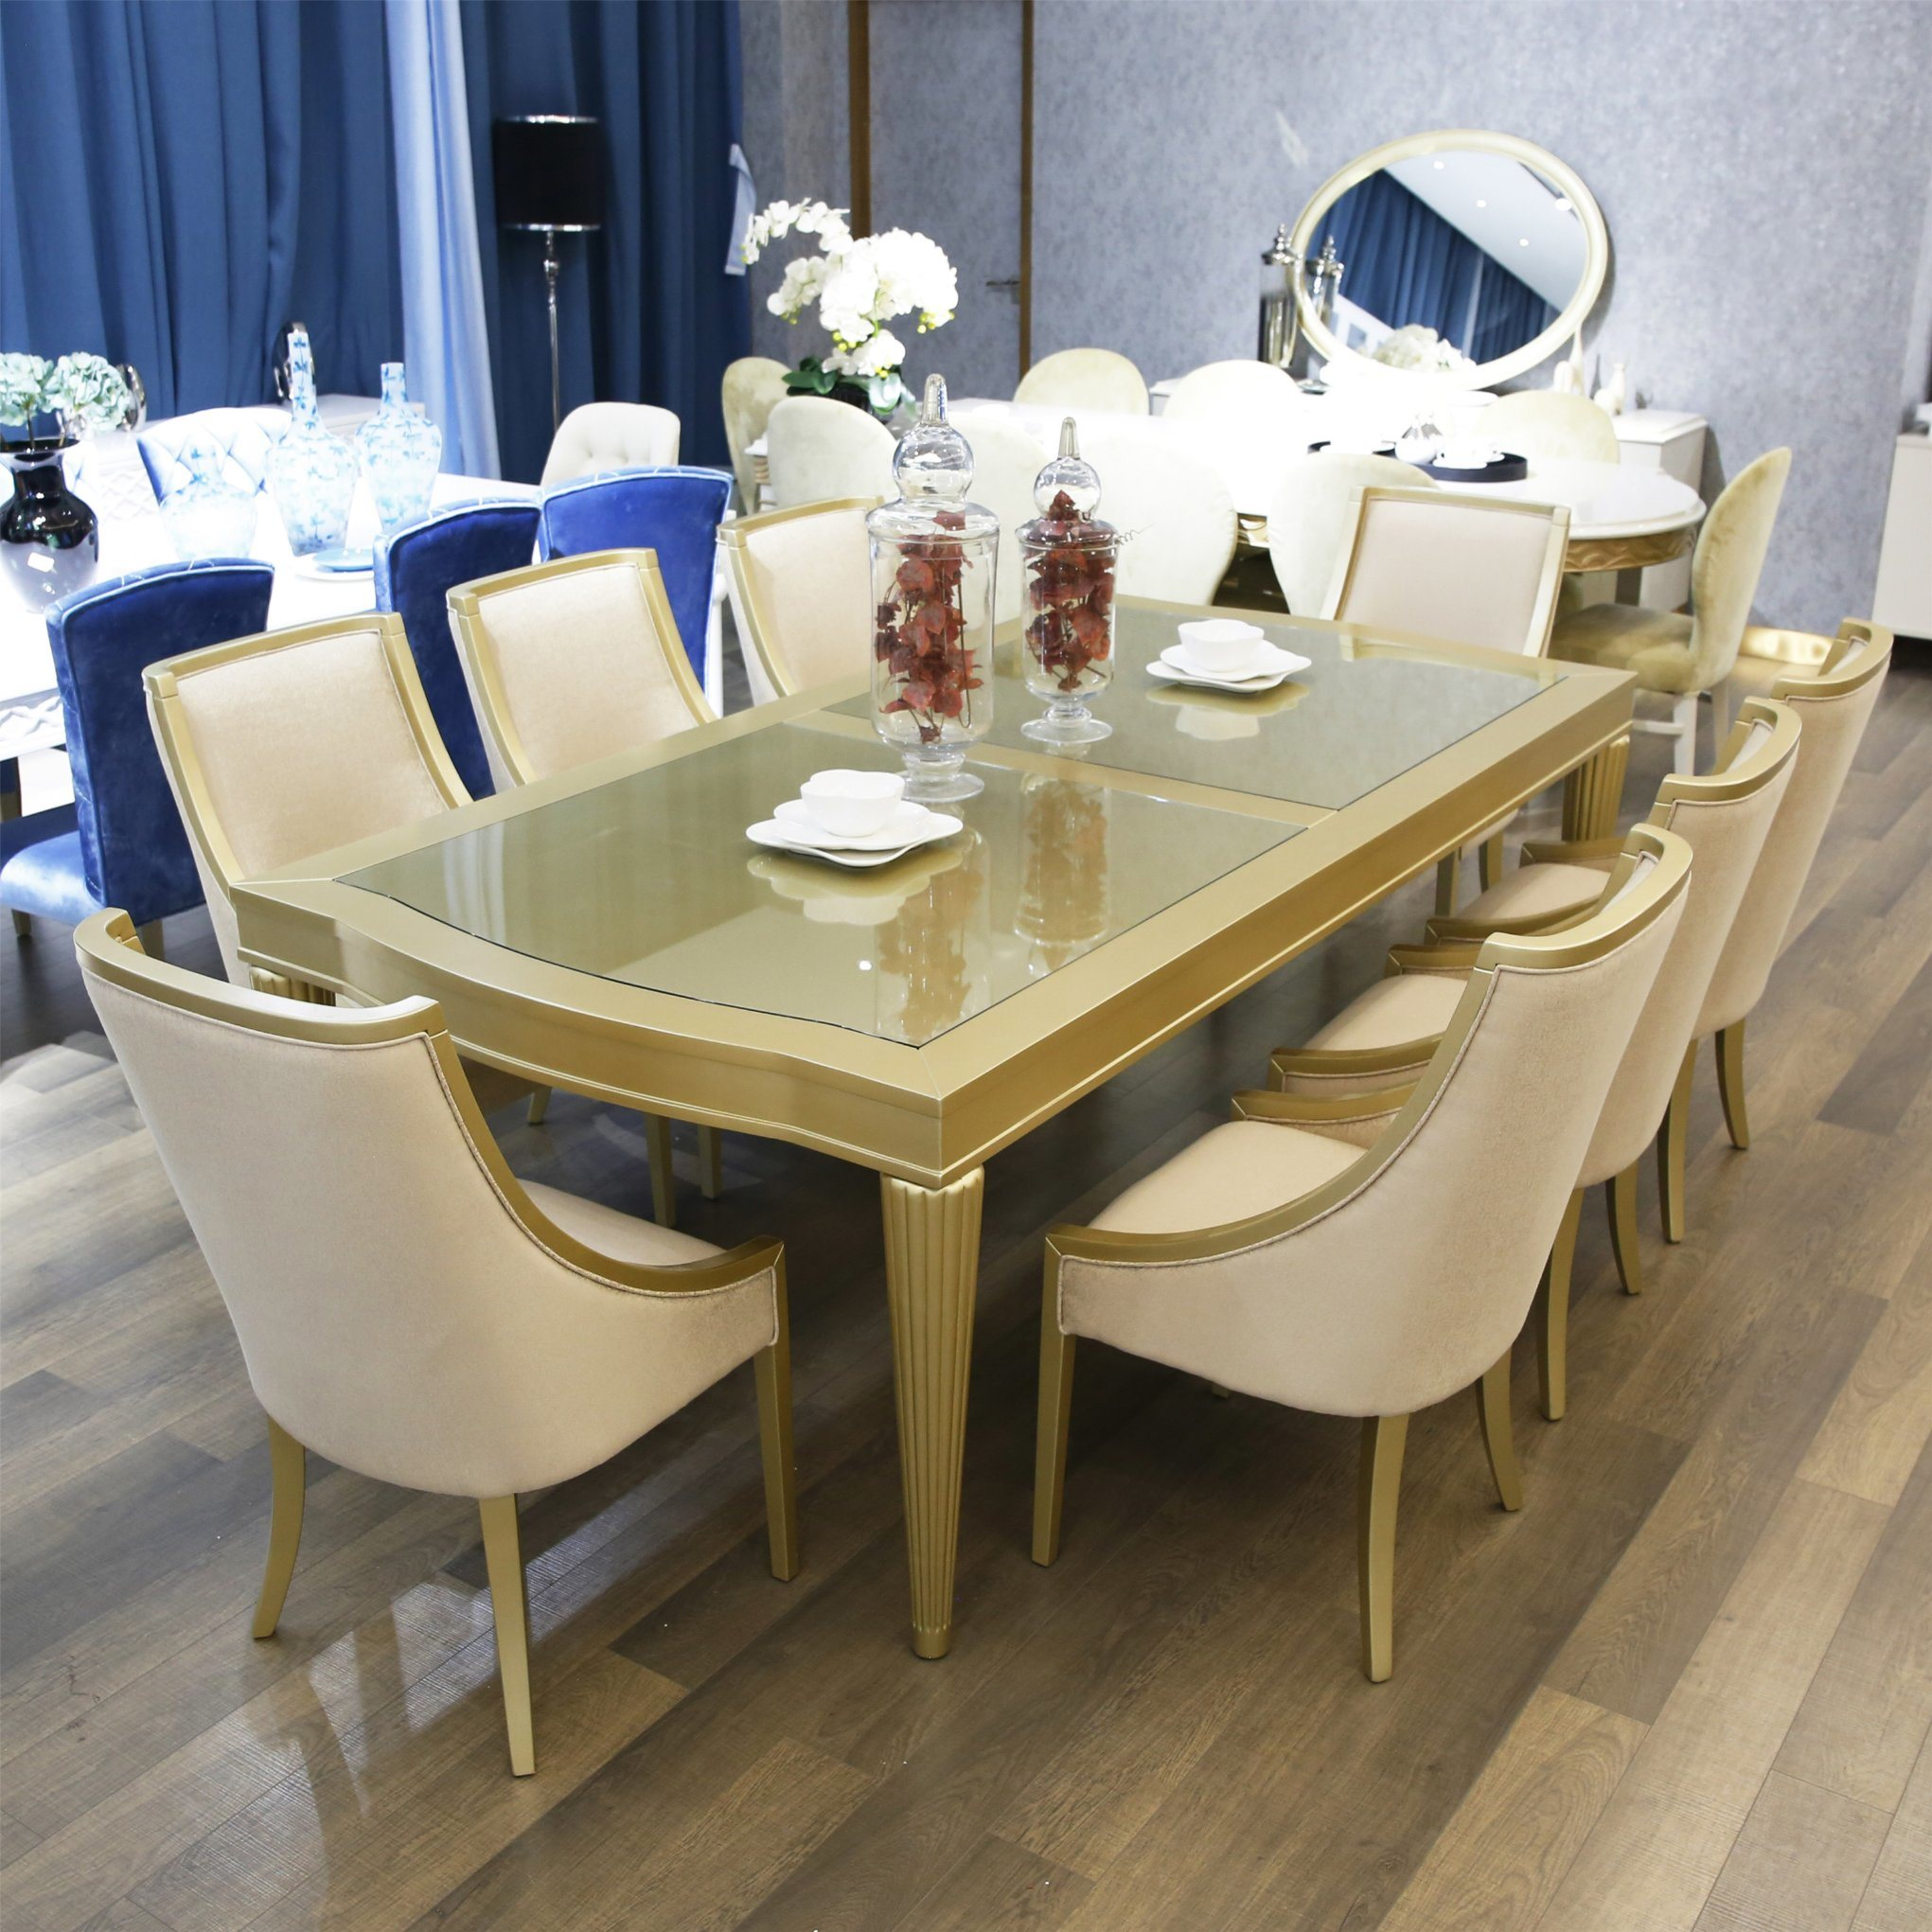 Modern Wooden Glass Top Dining Table And Chairs For Home Use China Dining Table Set Glass Dining Furniture Made In China Com